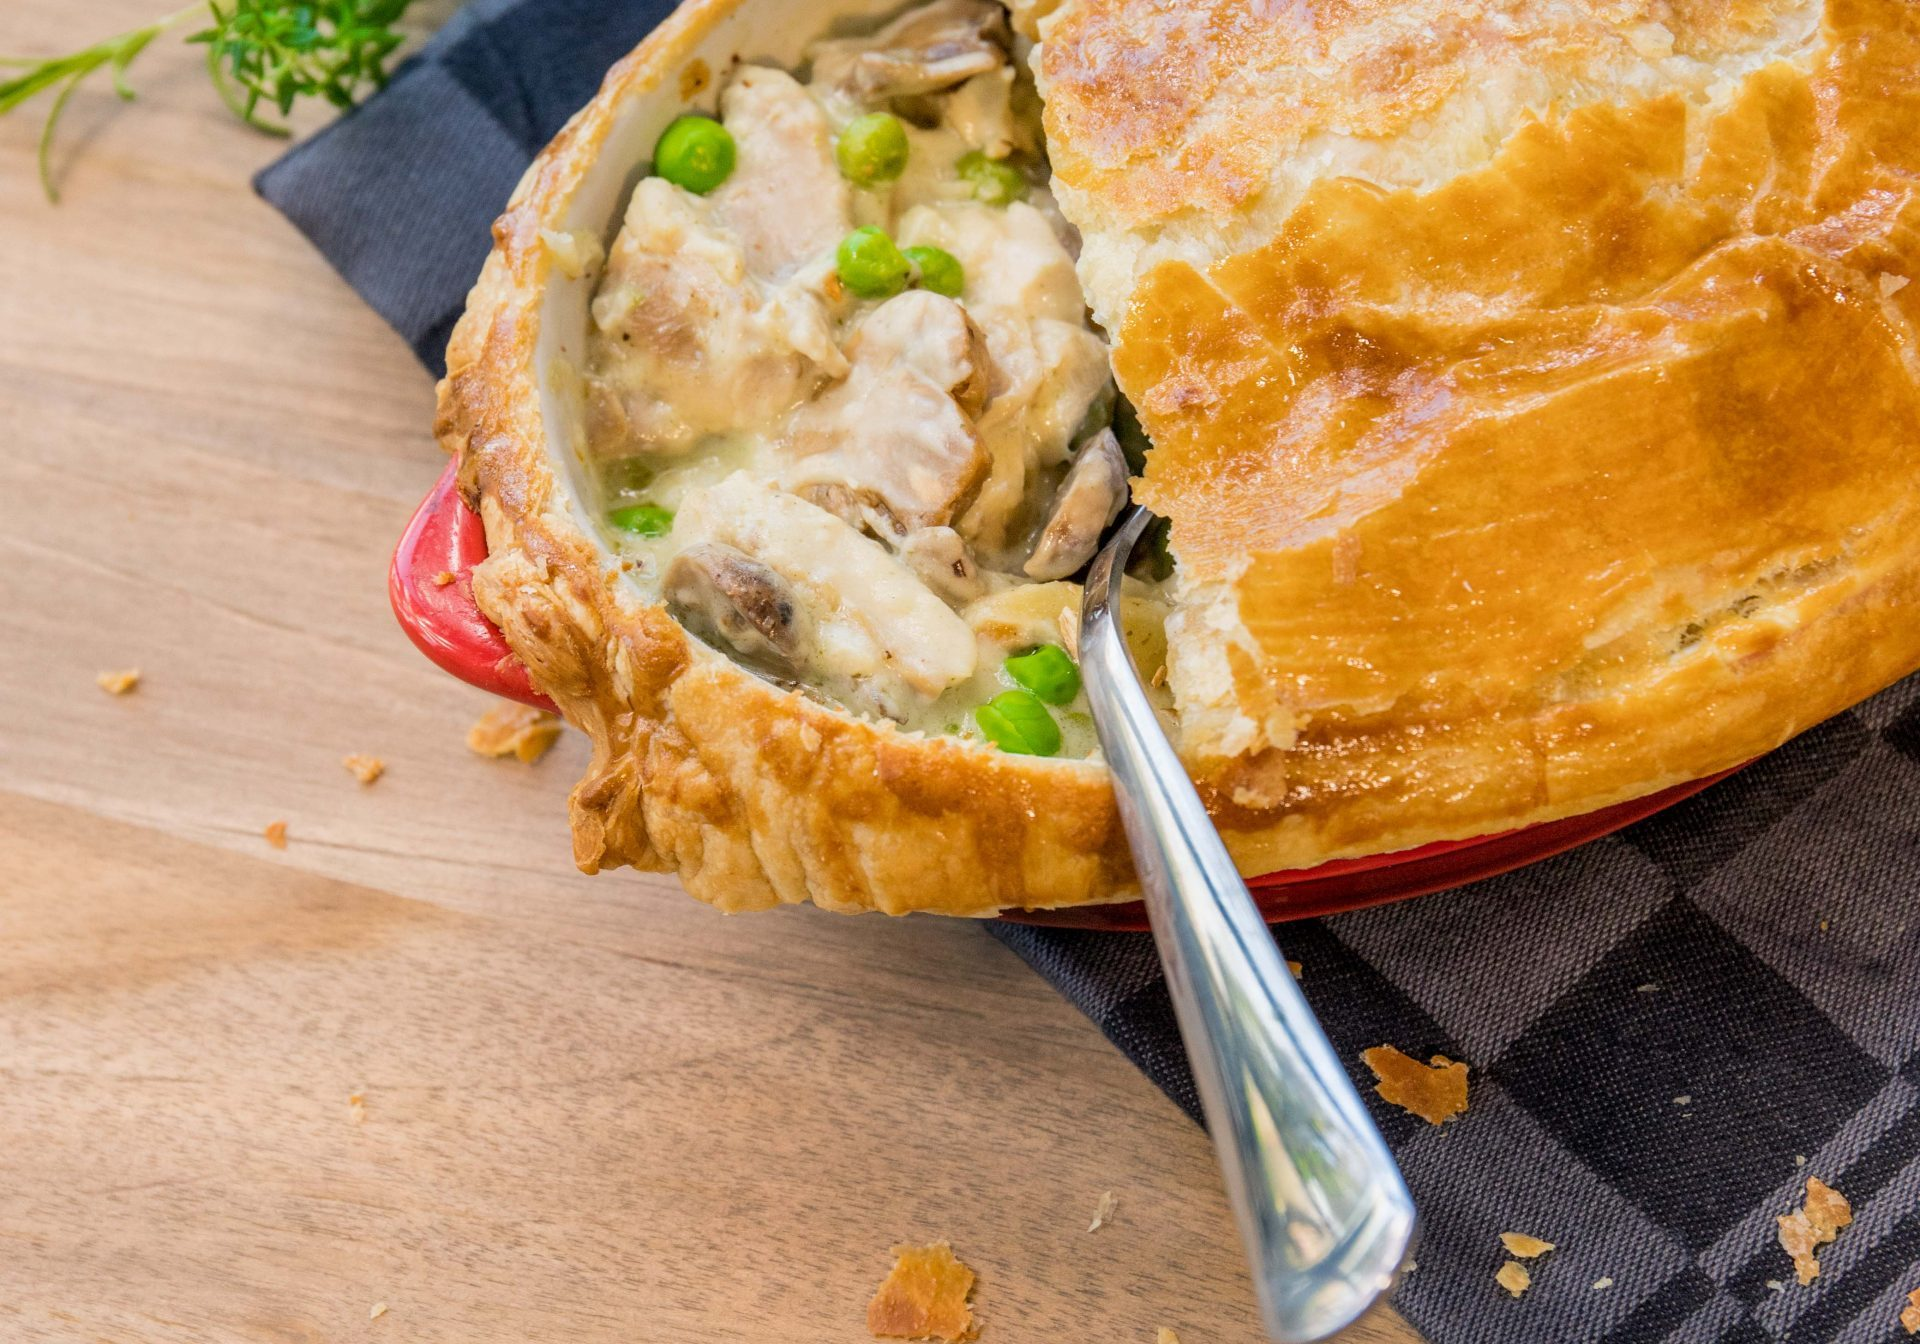 Pie with mushrooms and peas with a spoon